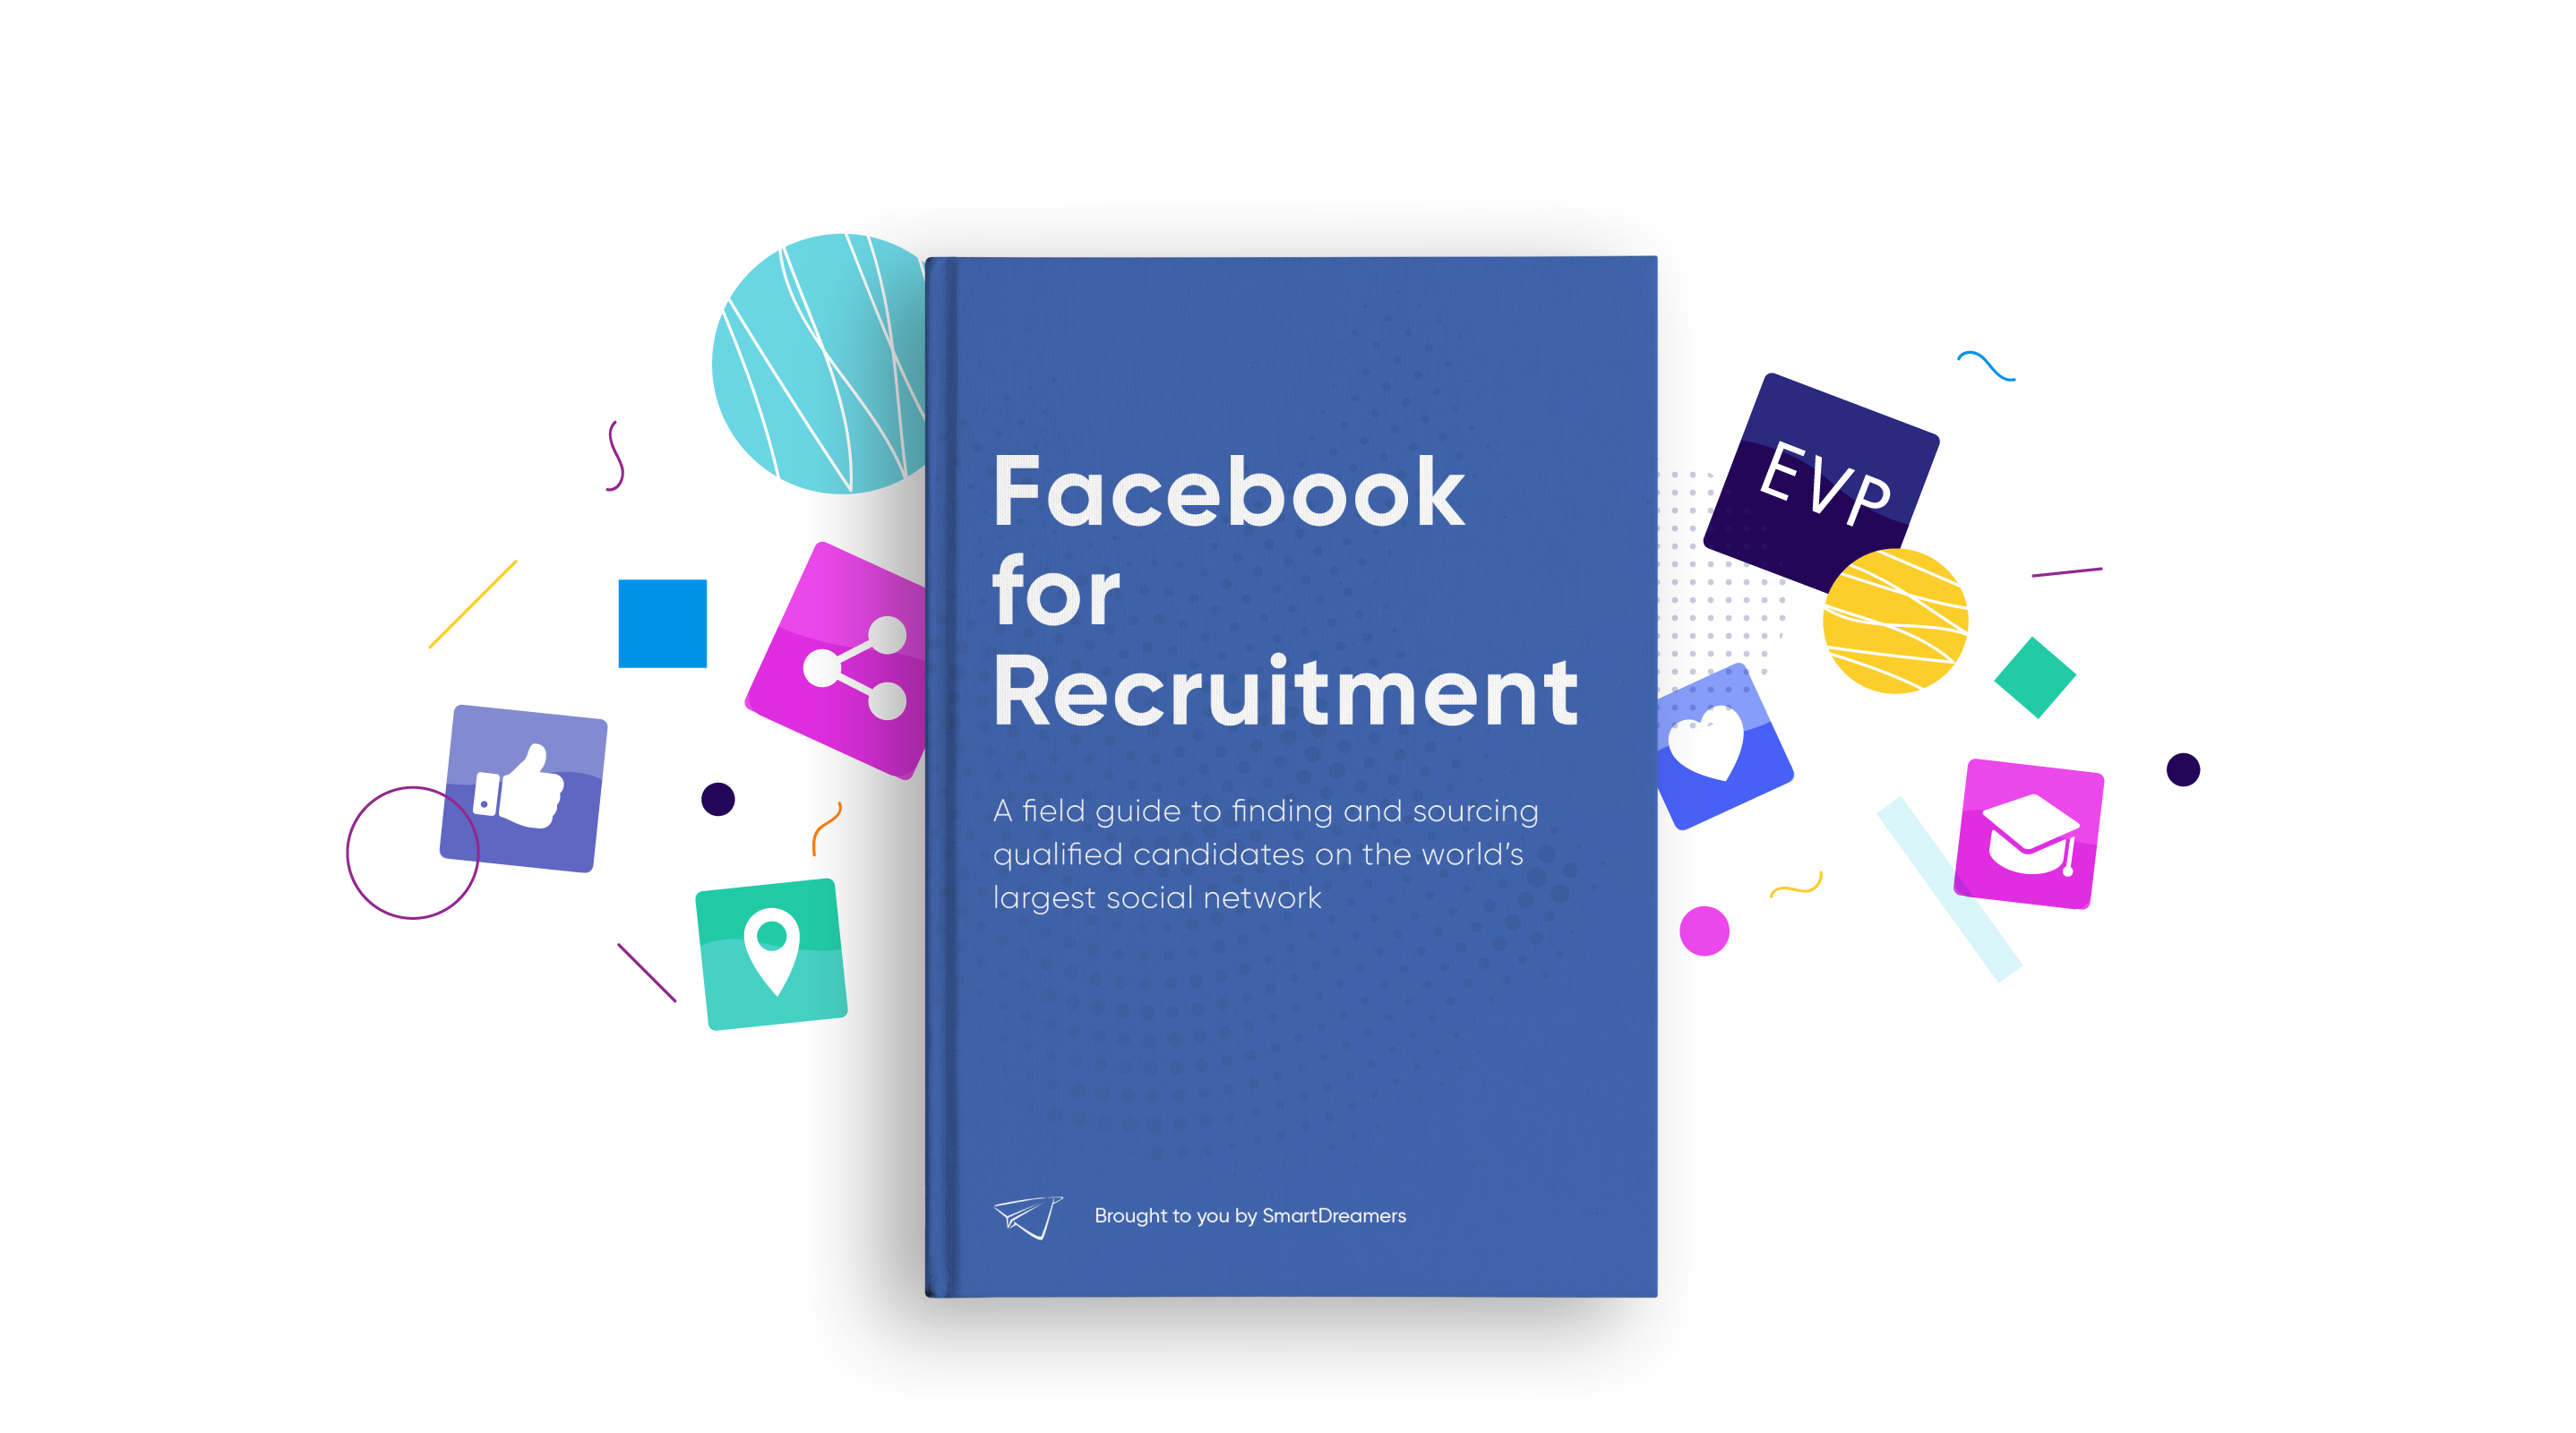 Fb recruitment blog post endings